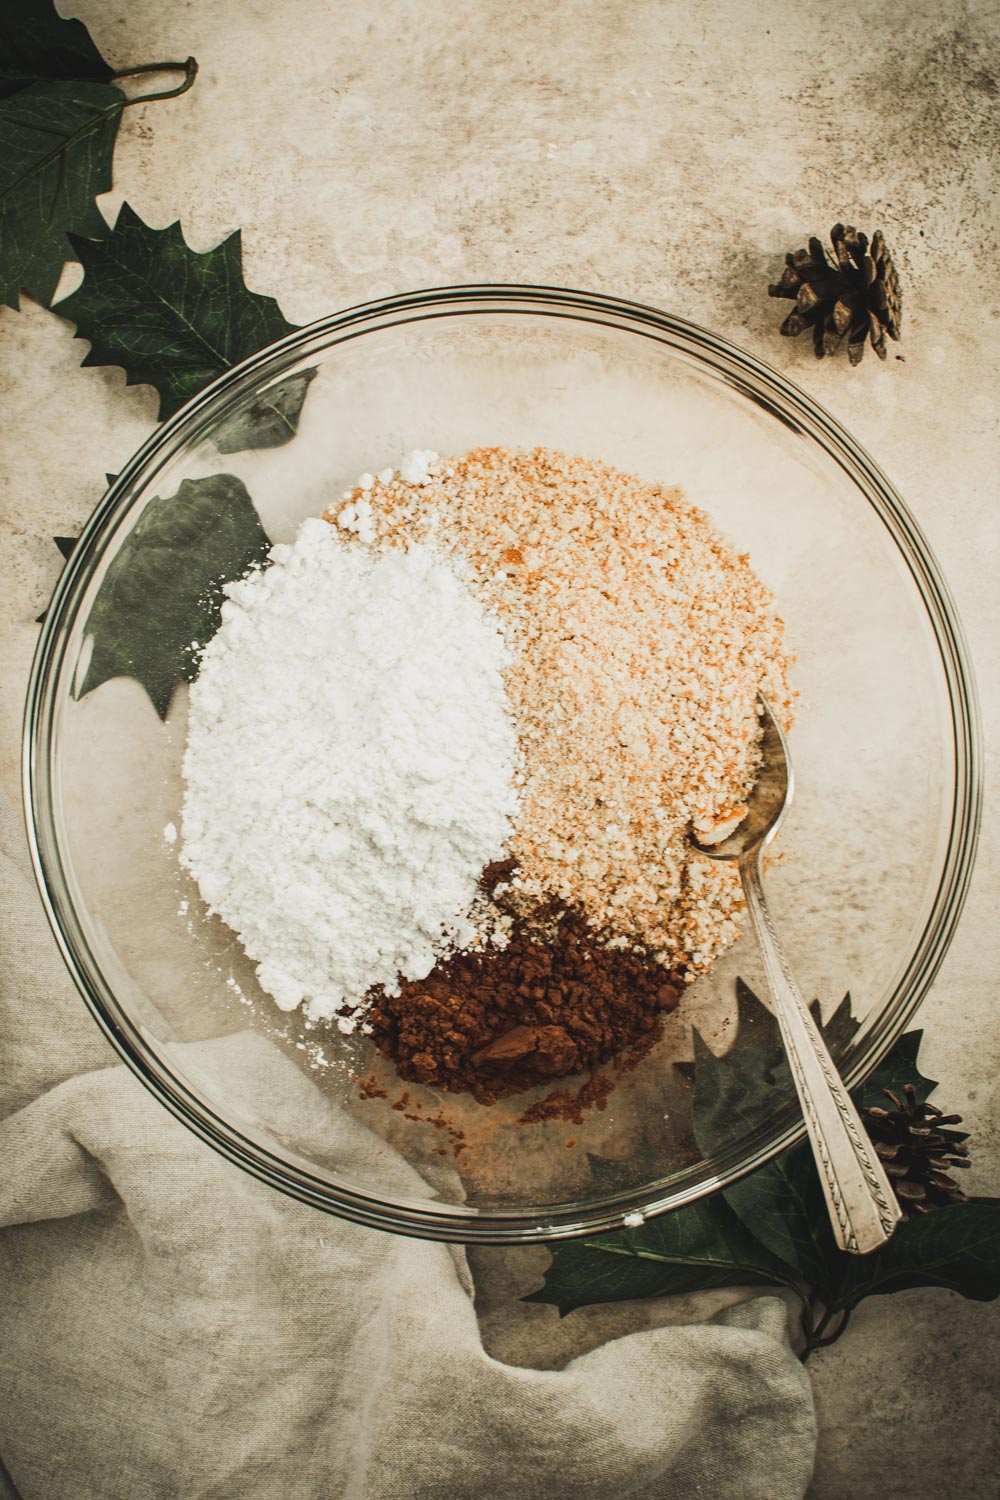 Old fashioned rum ball dry ingredients in glass mixing bowl.